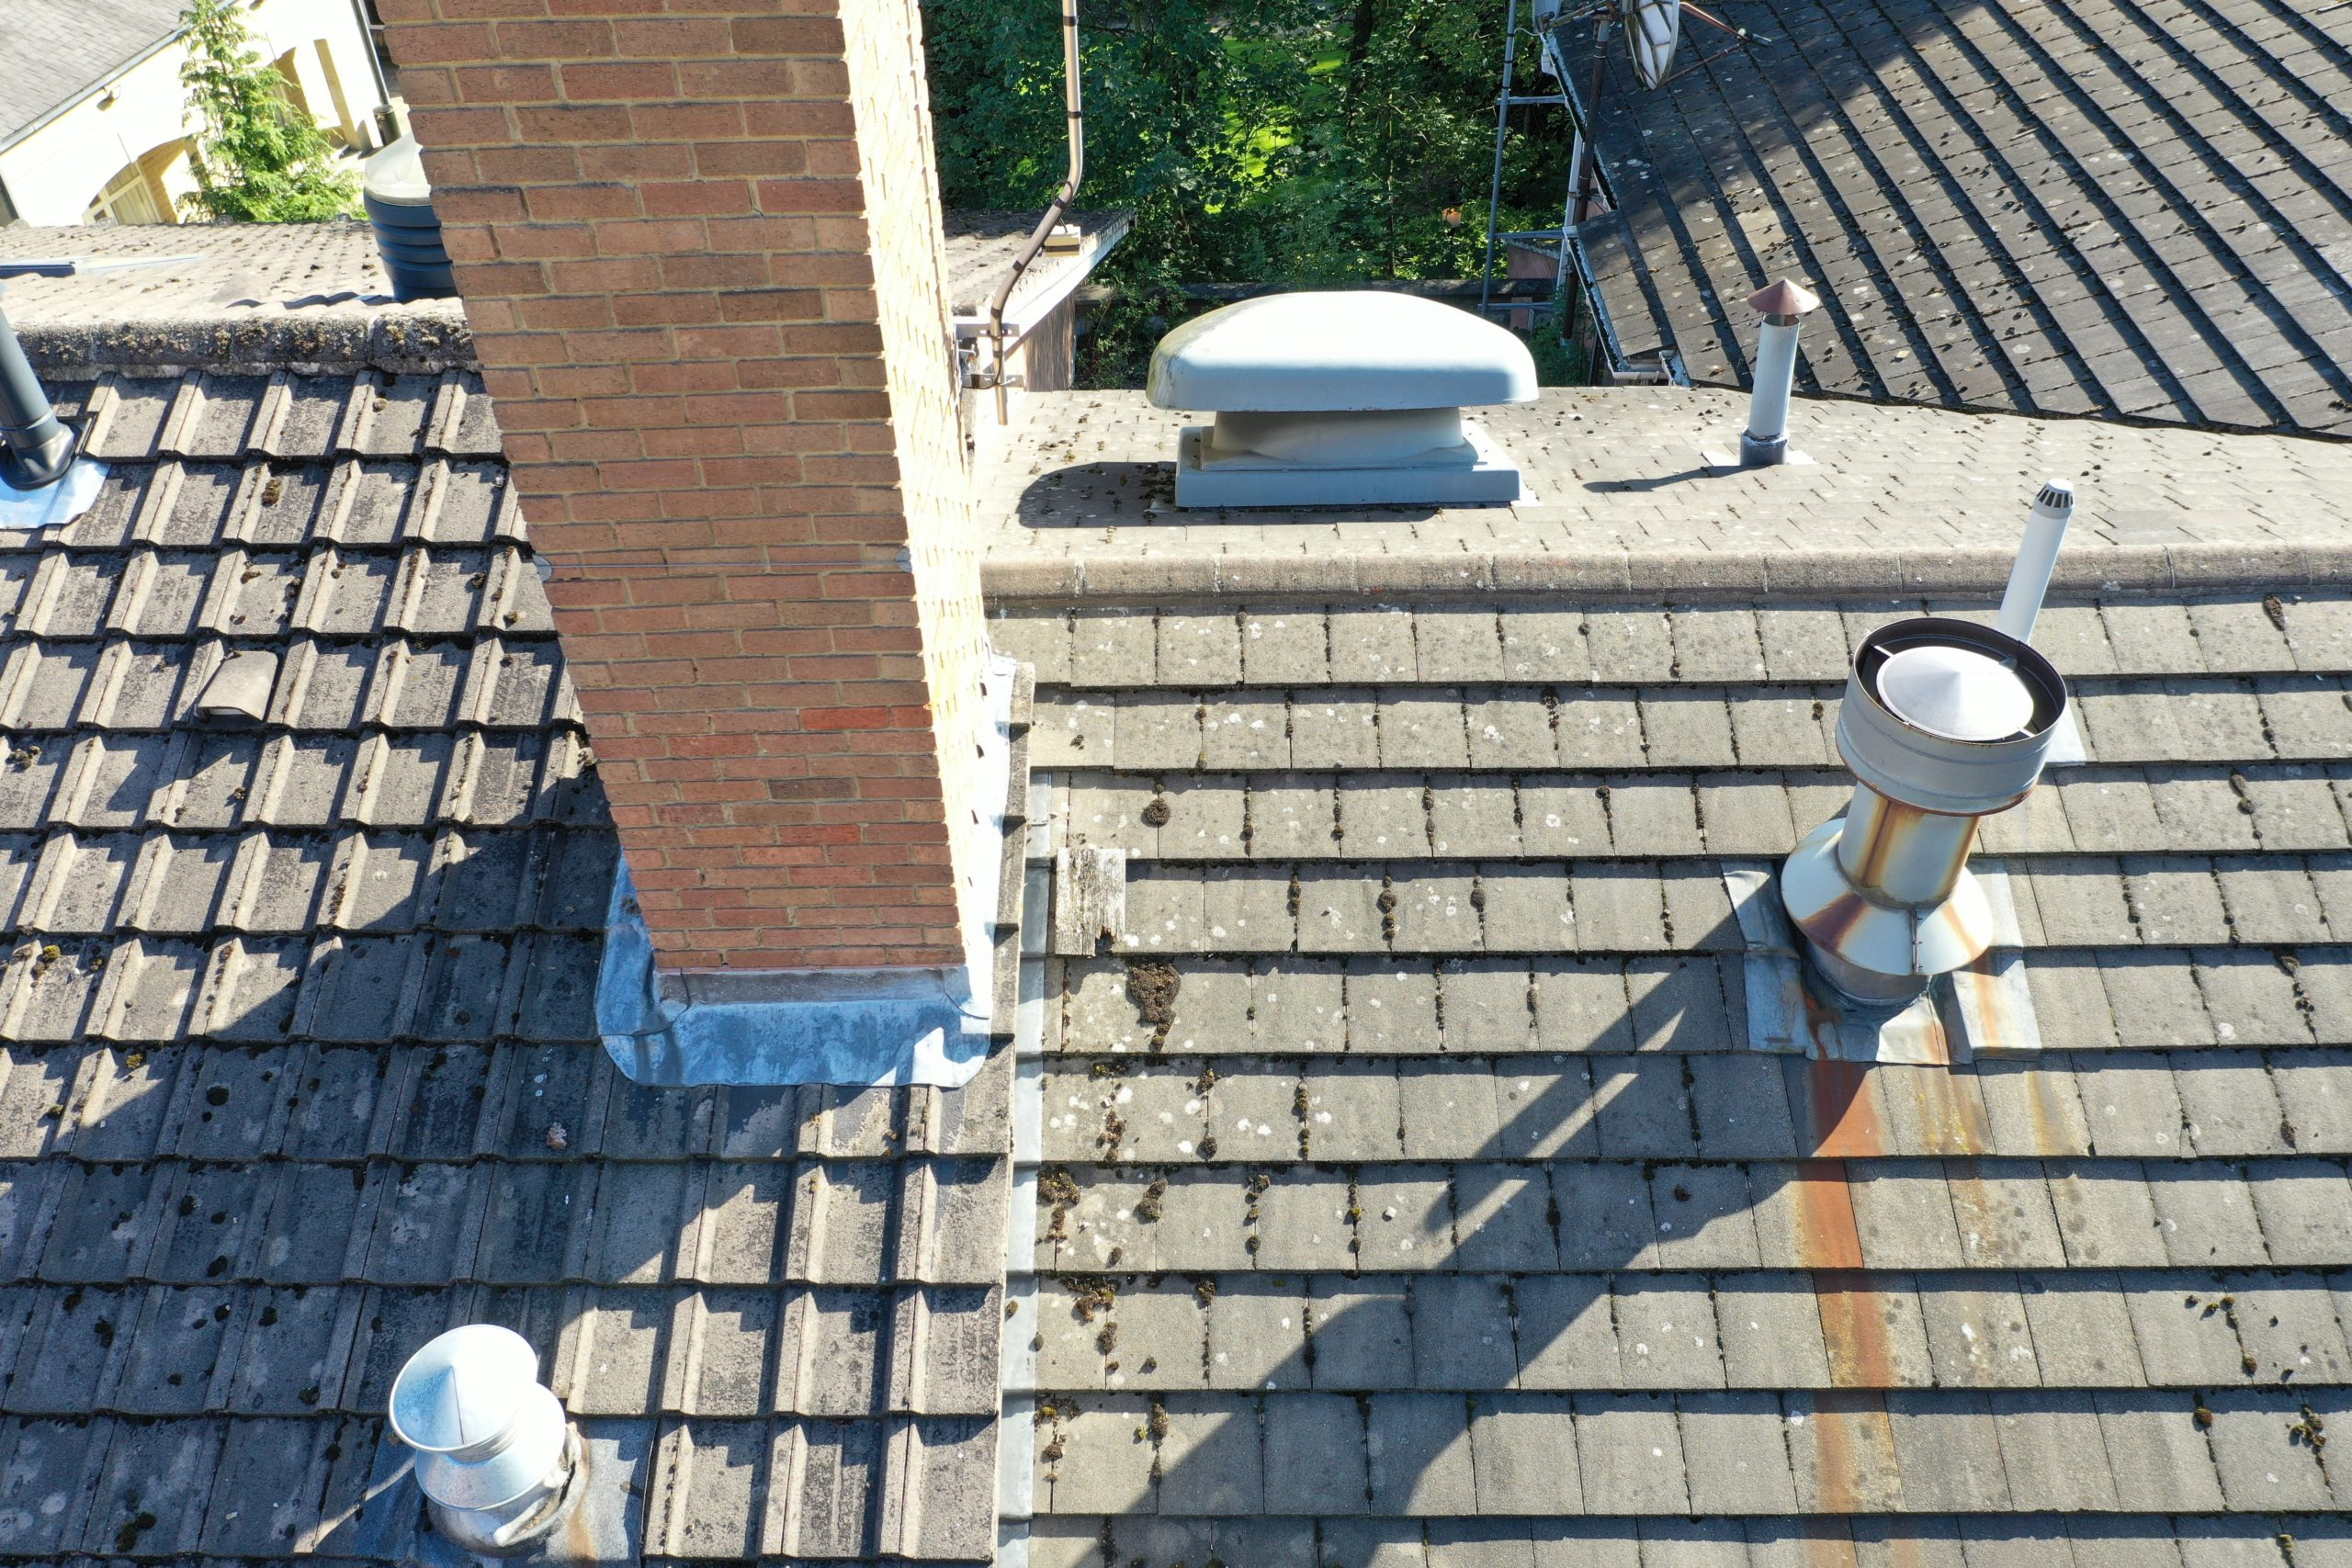 DRONE ROOF SURVEY COST UK